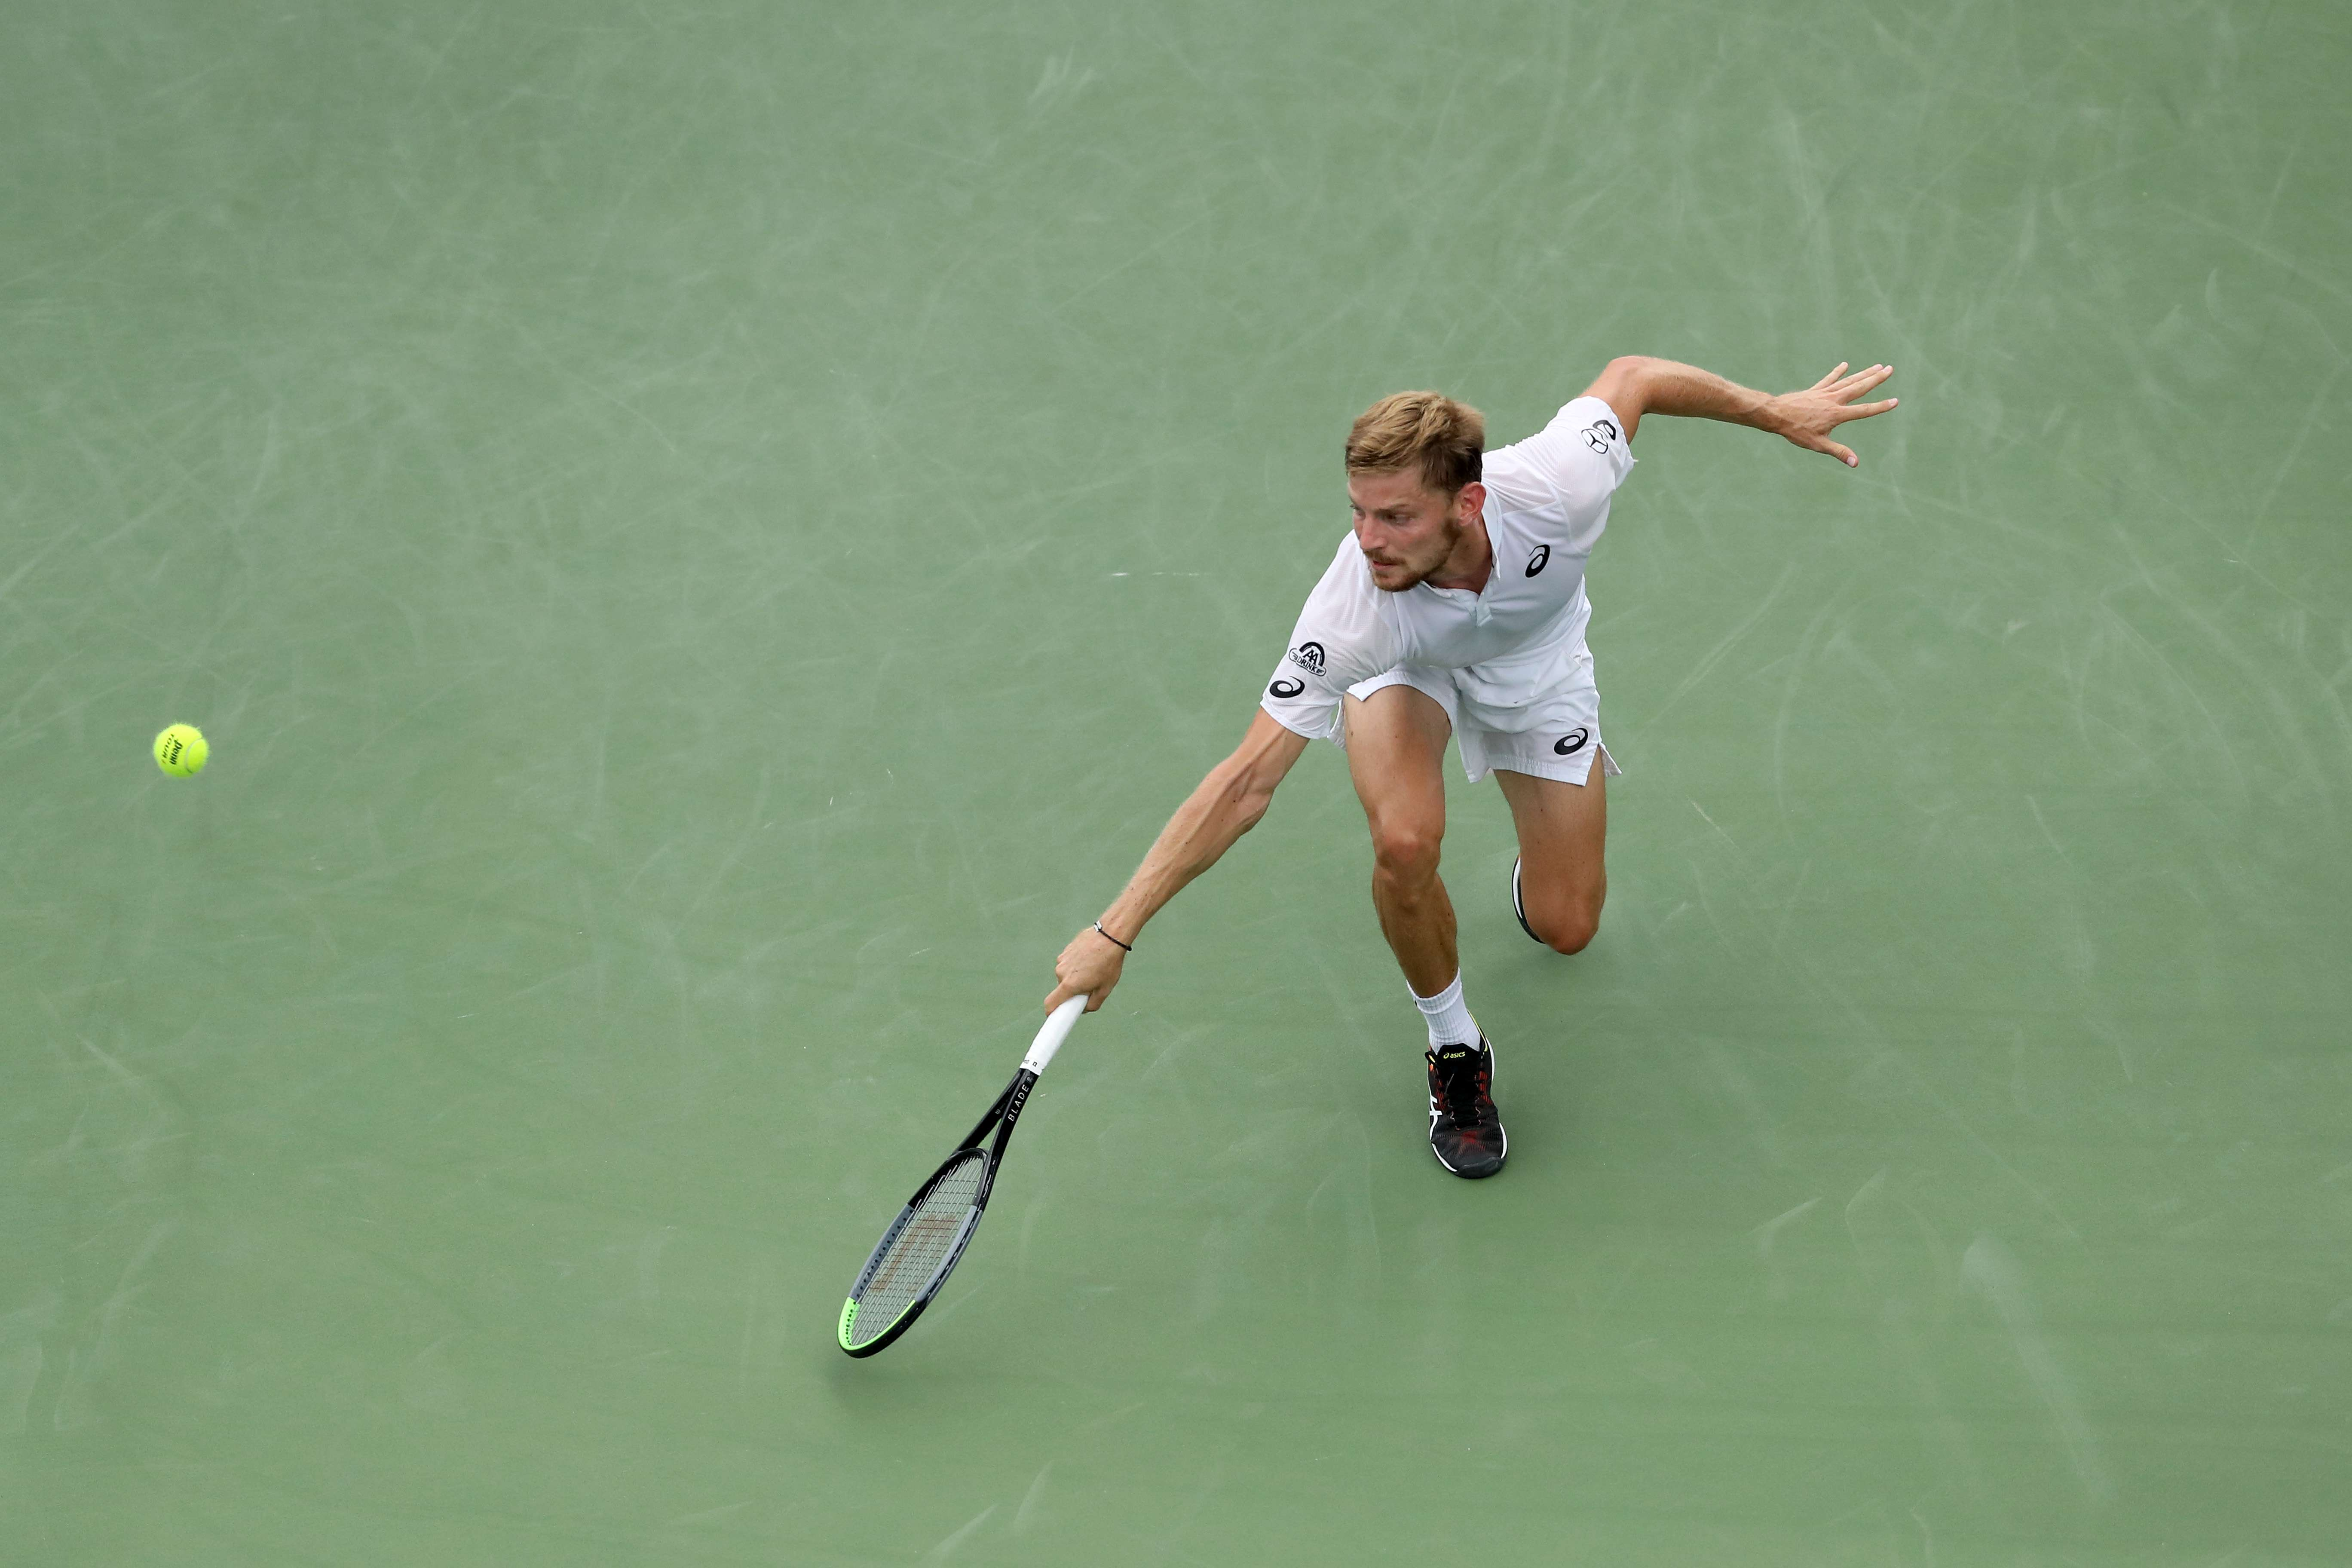 Tennis - ATP - Goffin se transforme en mur et signe un point magistral face à Gasquet (vidéo)